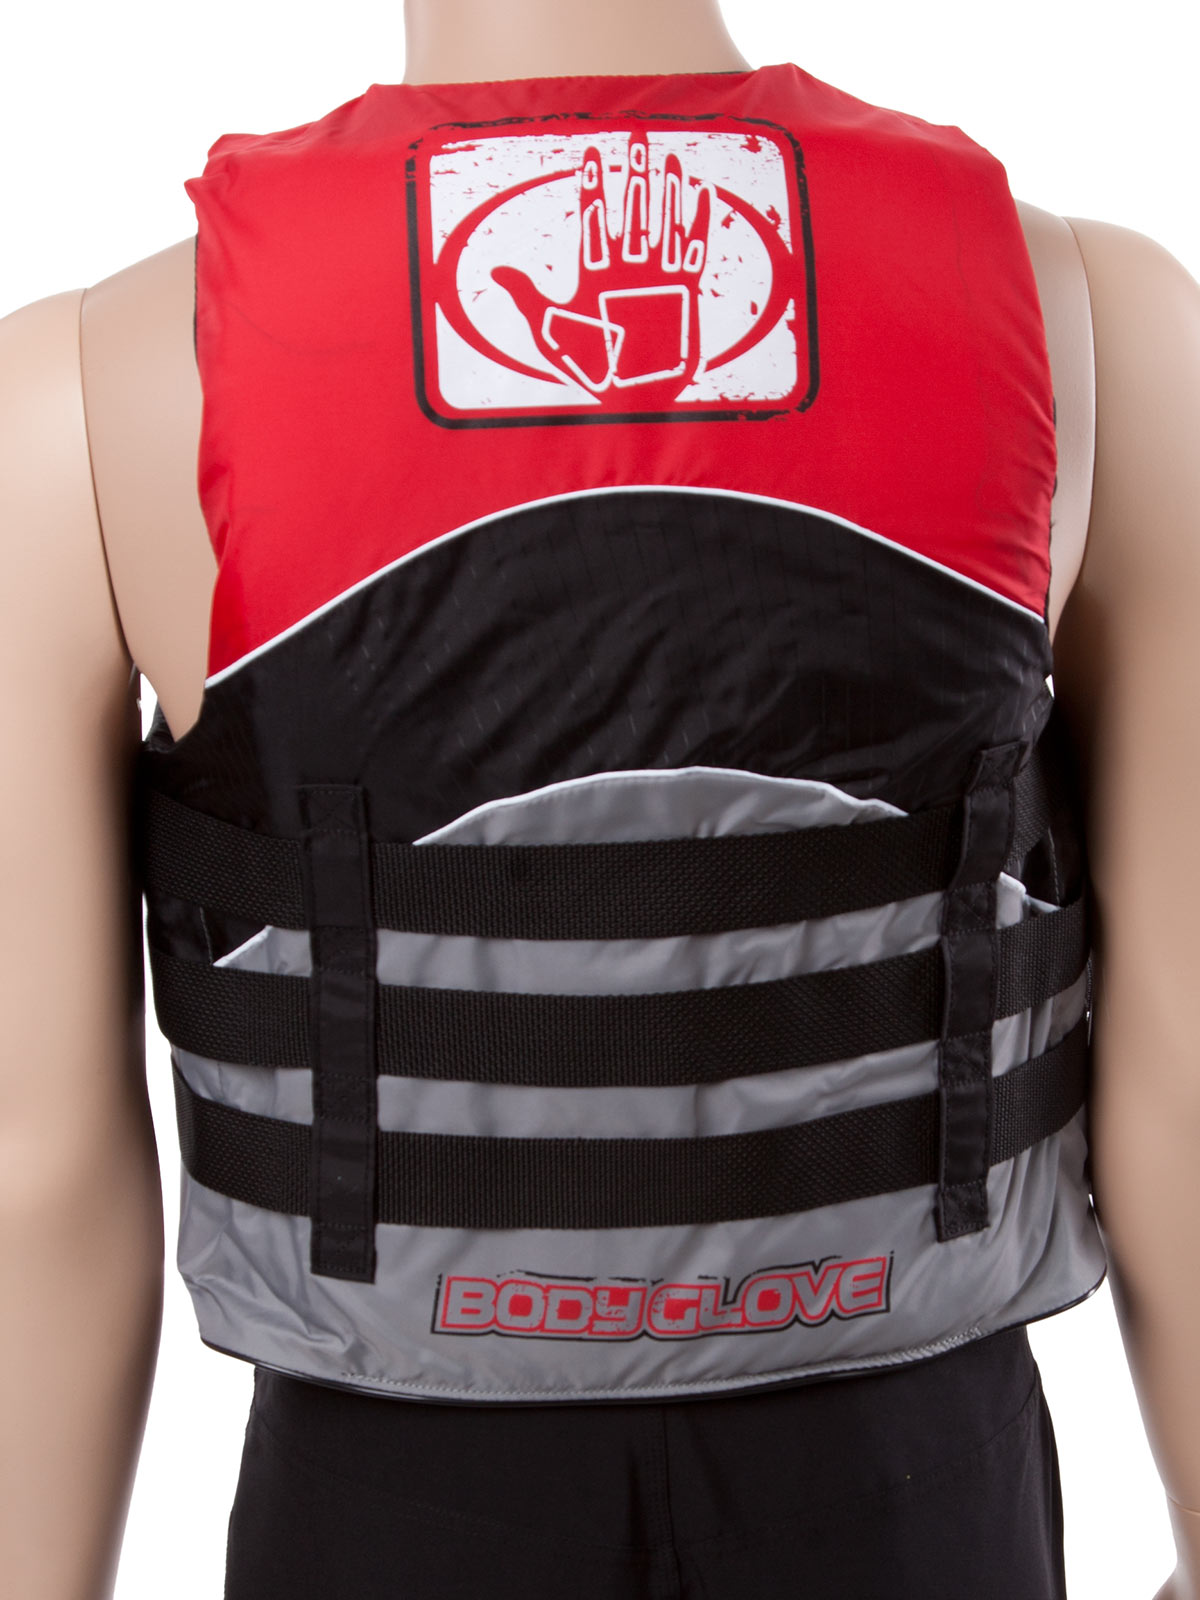 Body Glove Method Life Vest Adult USCG Lifejacket Sizes